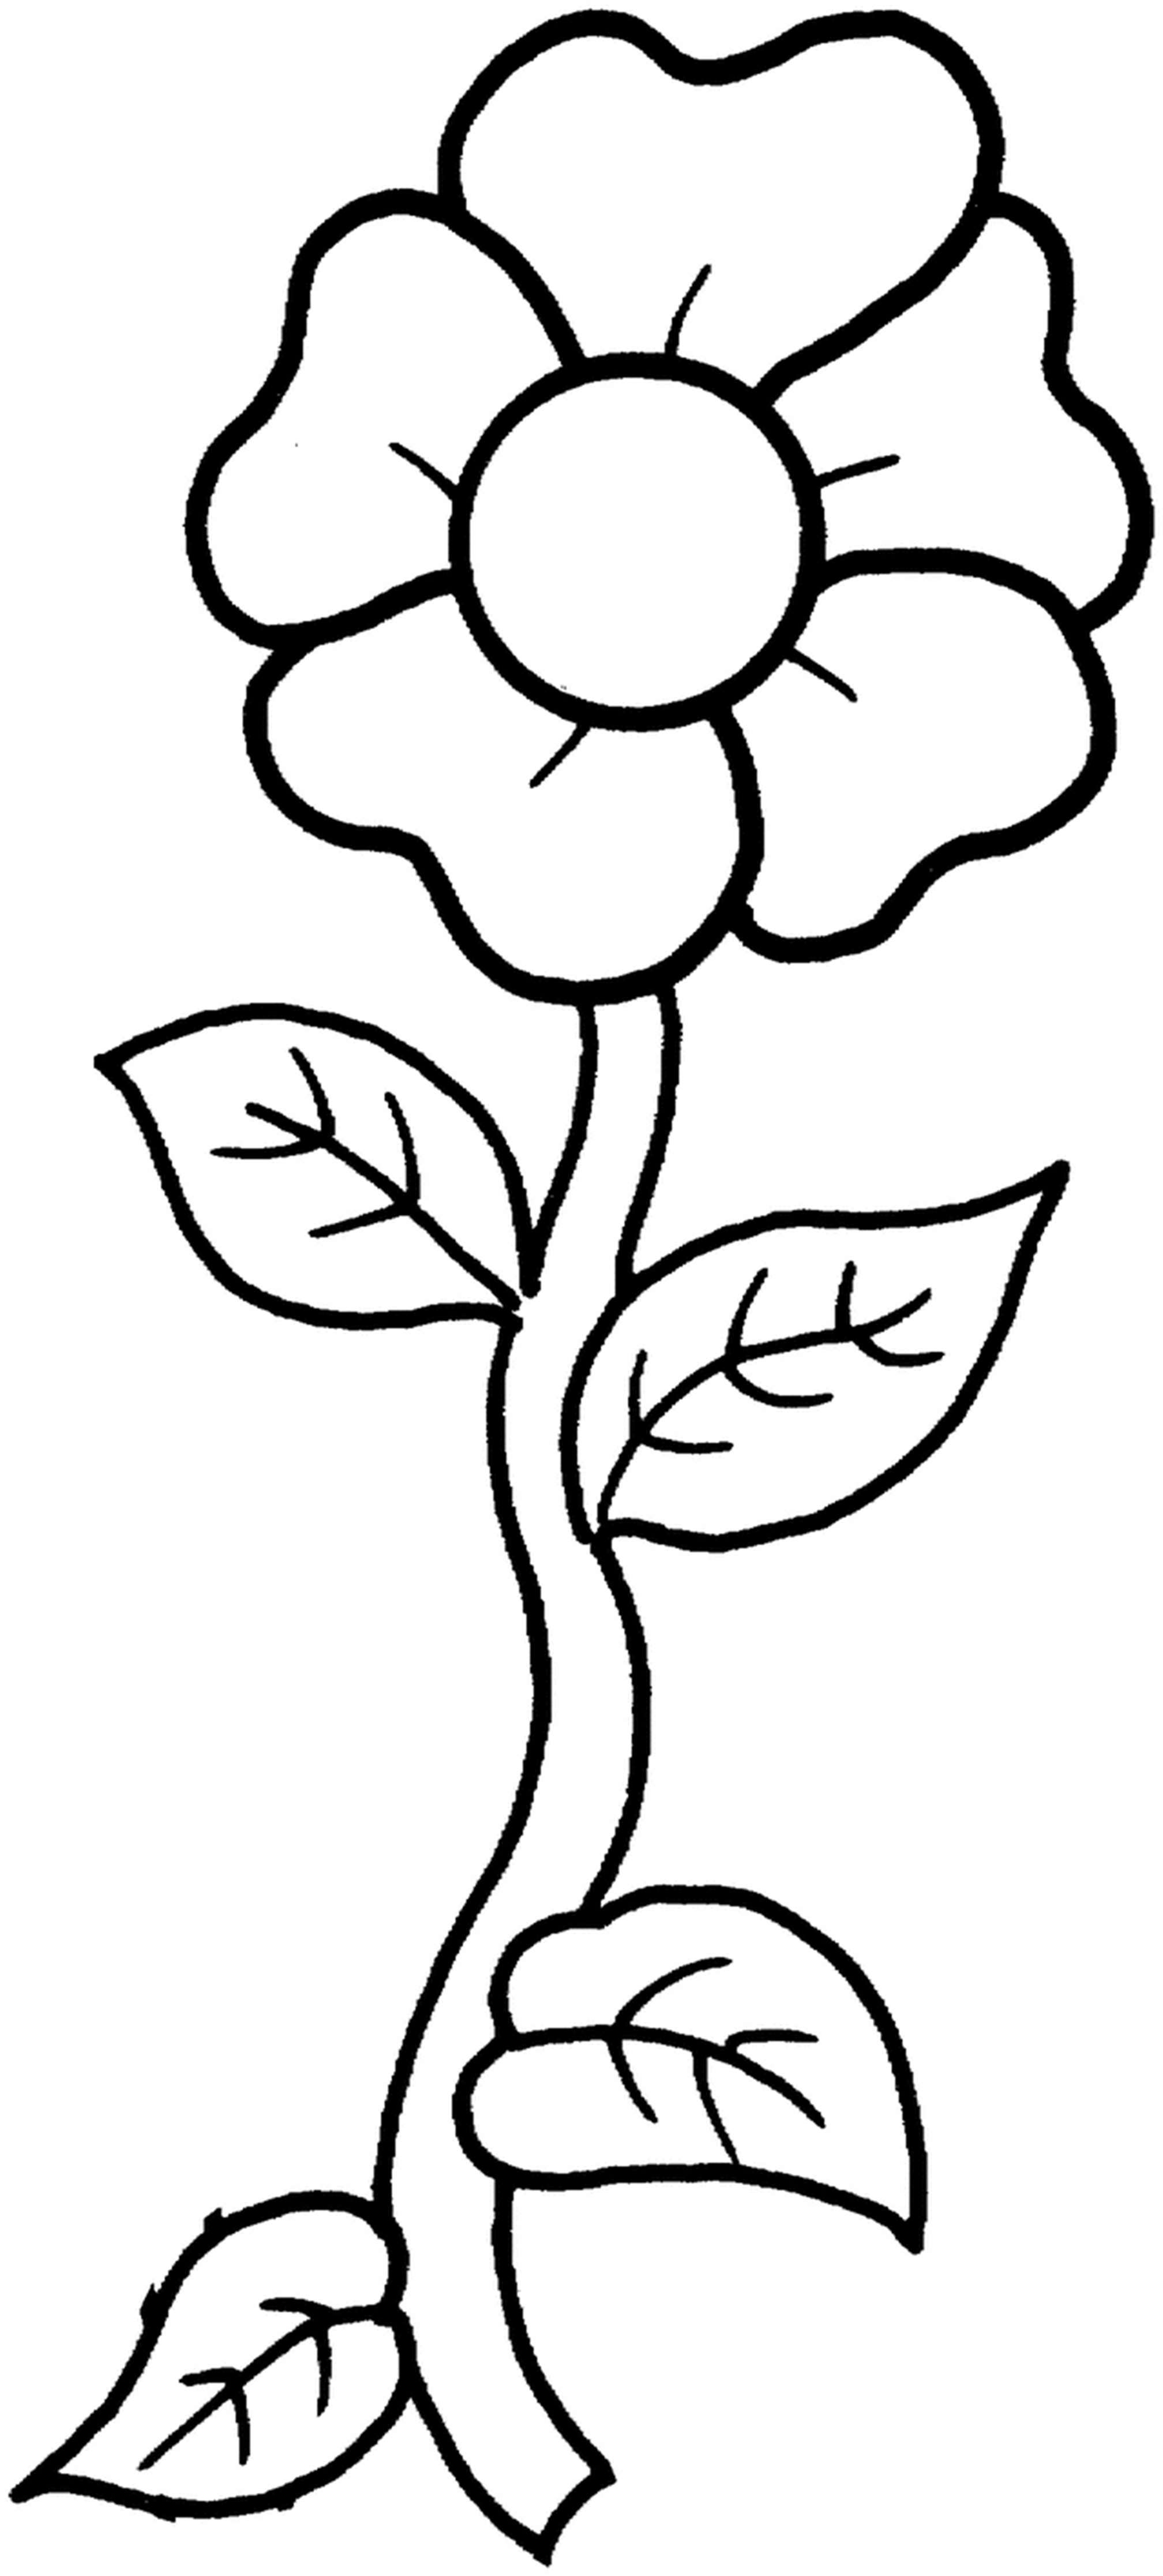 flower templates for coloring free printable tulip coloring pages for kids for flower coloring templates